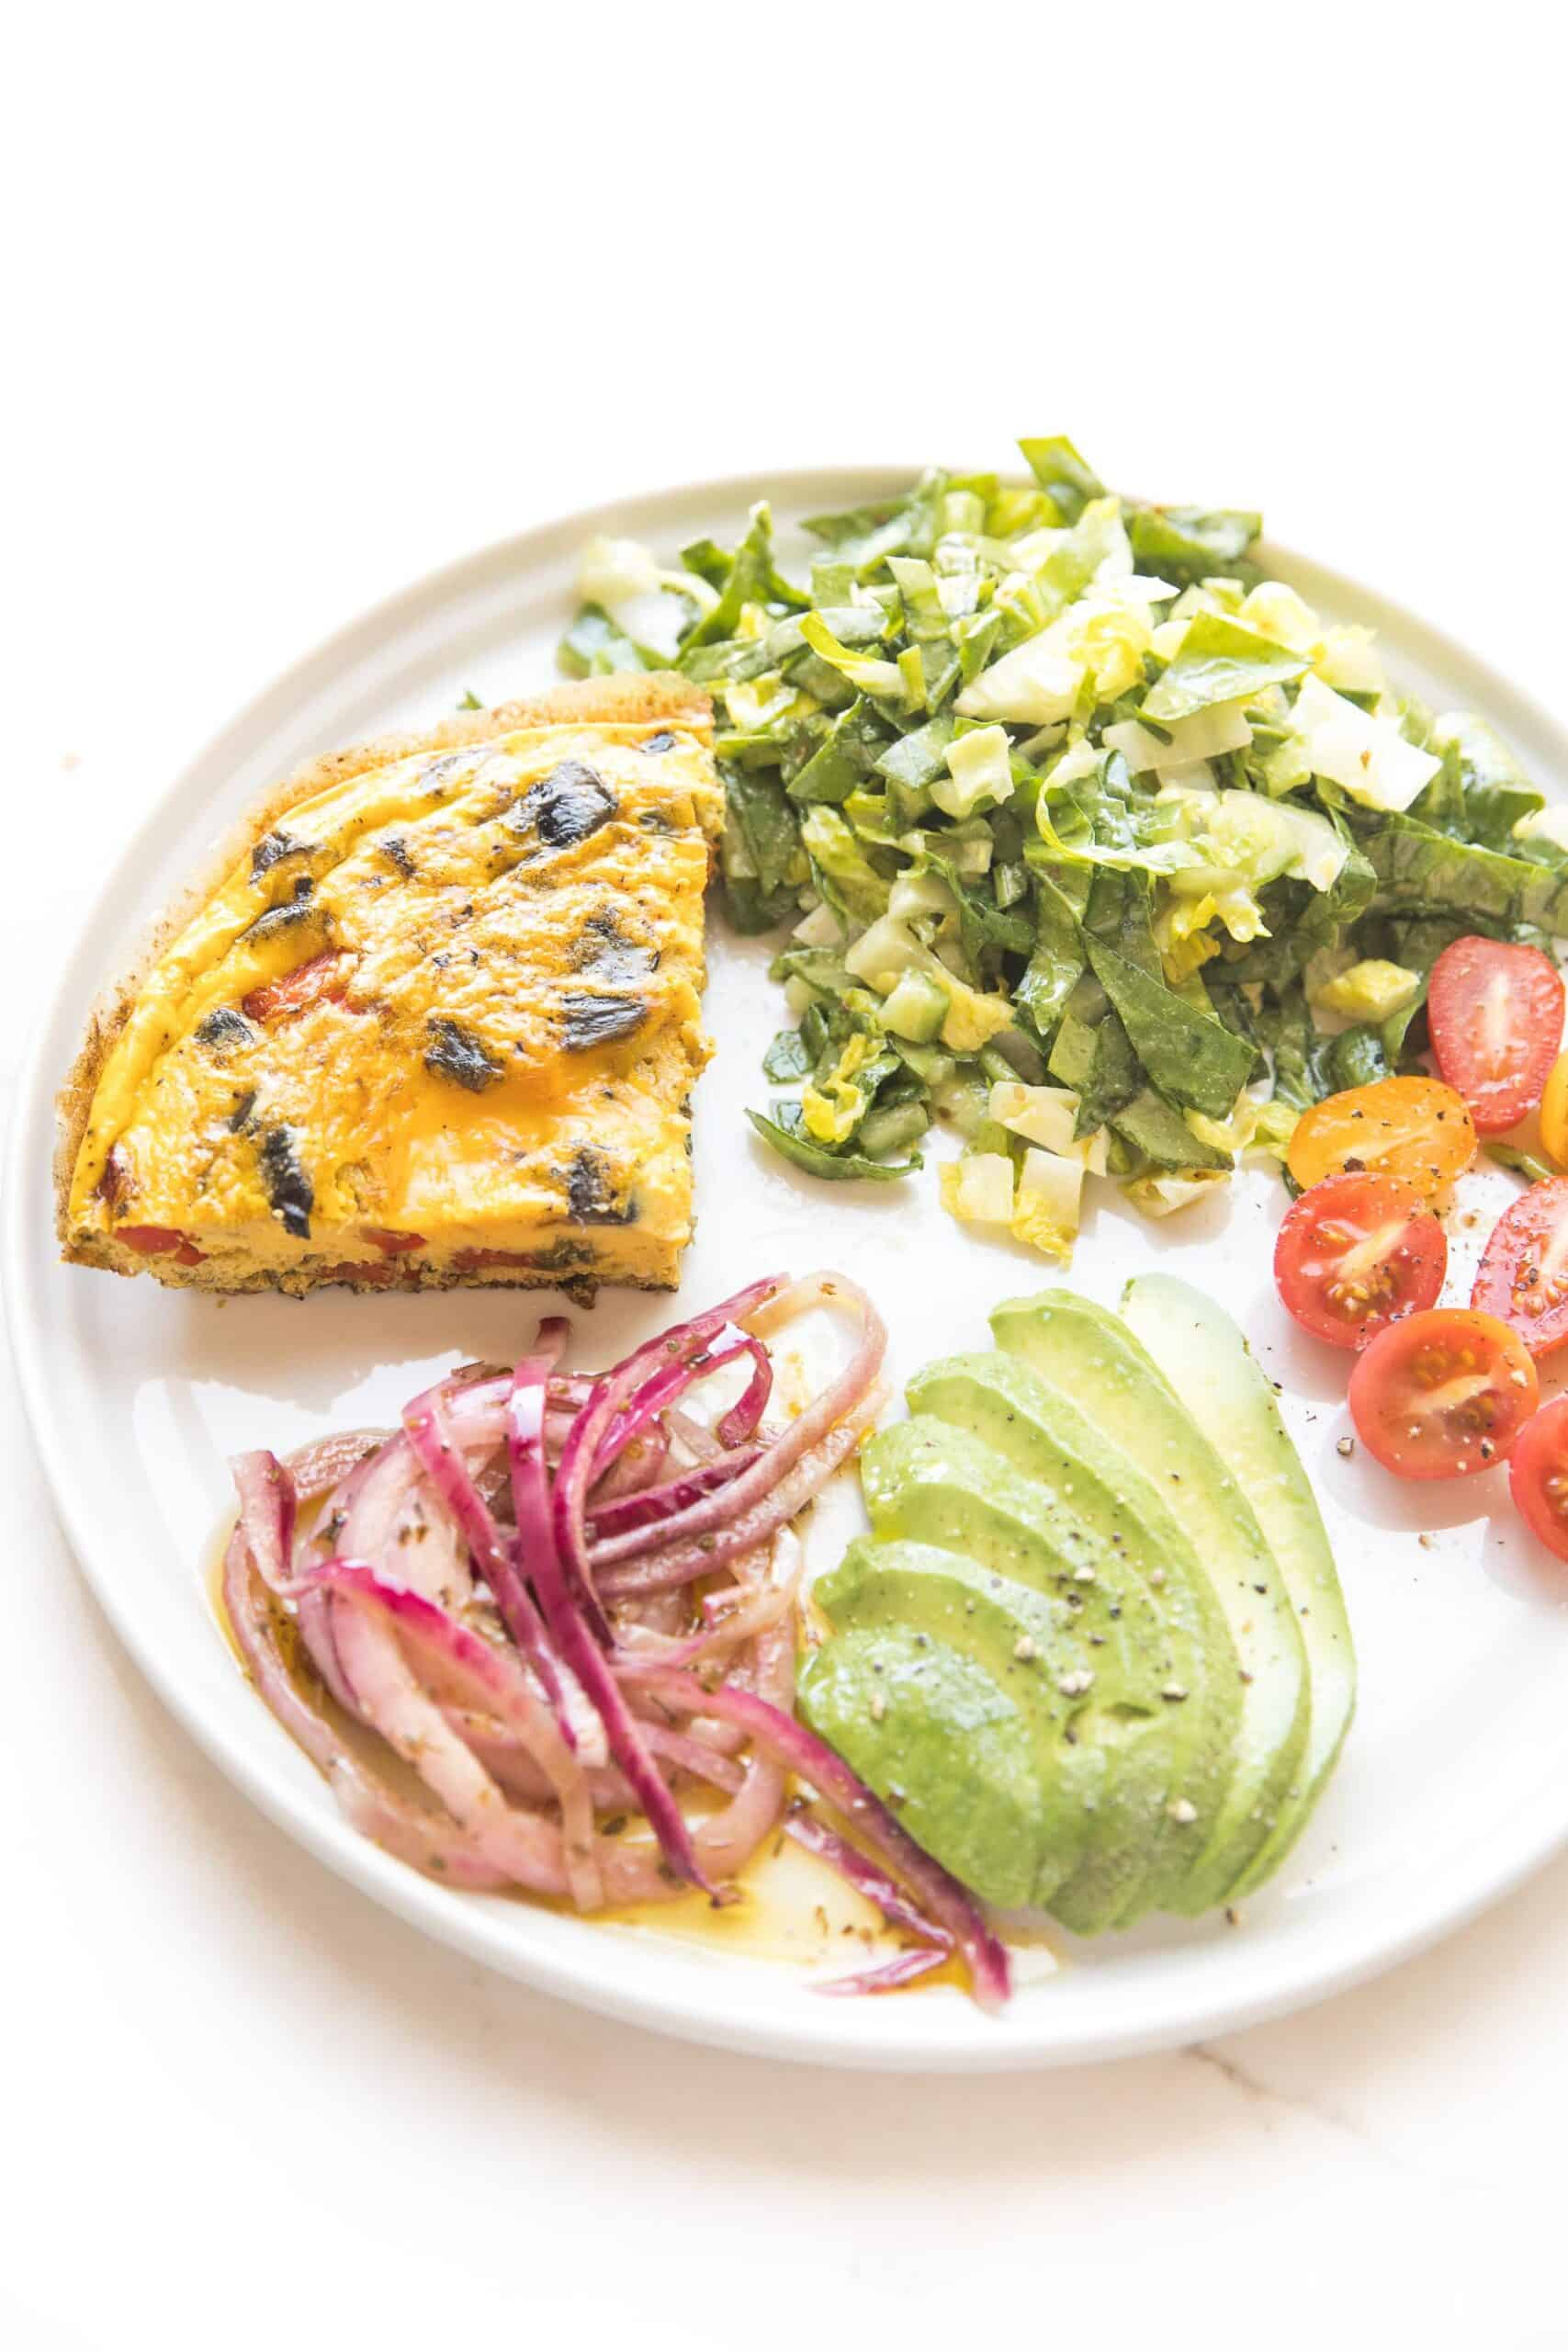 frittata on a white plate with marinated onions, avocado, tomatoes, green salad